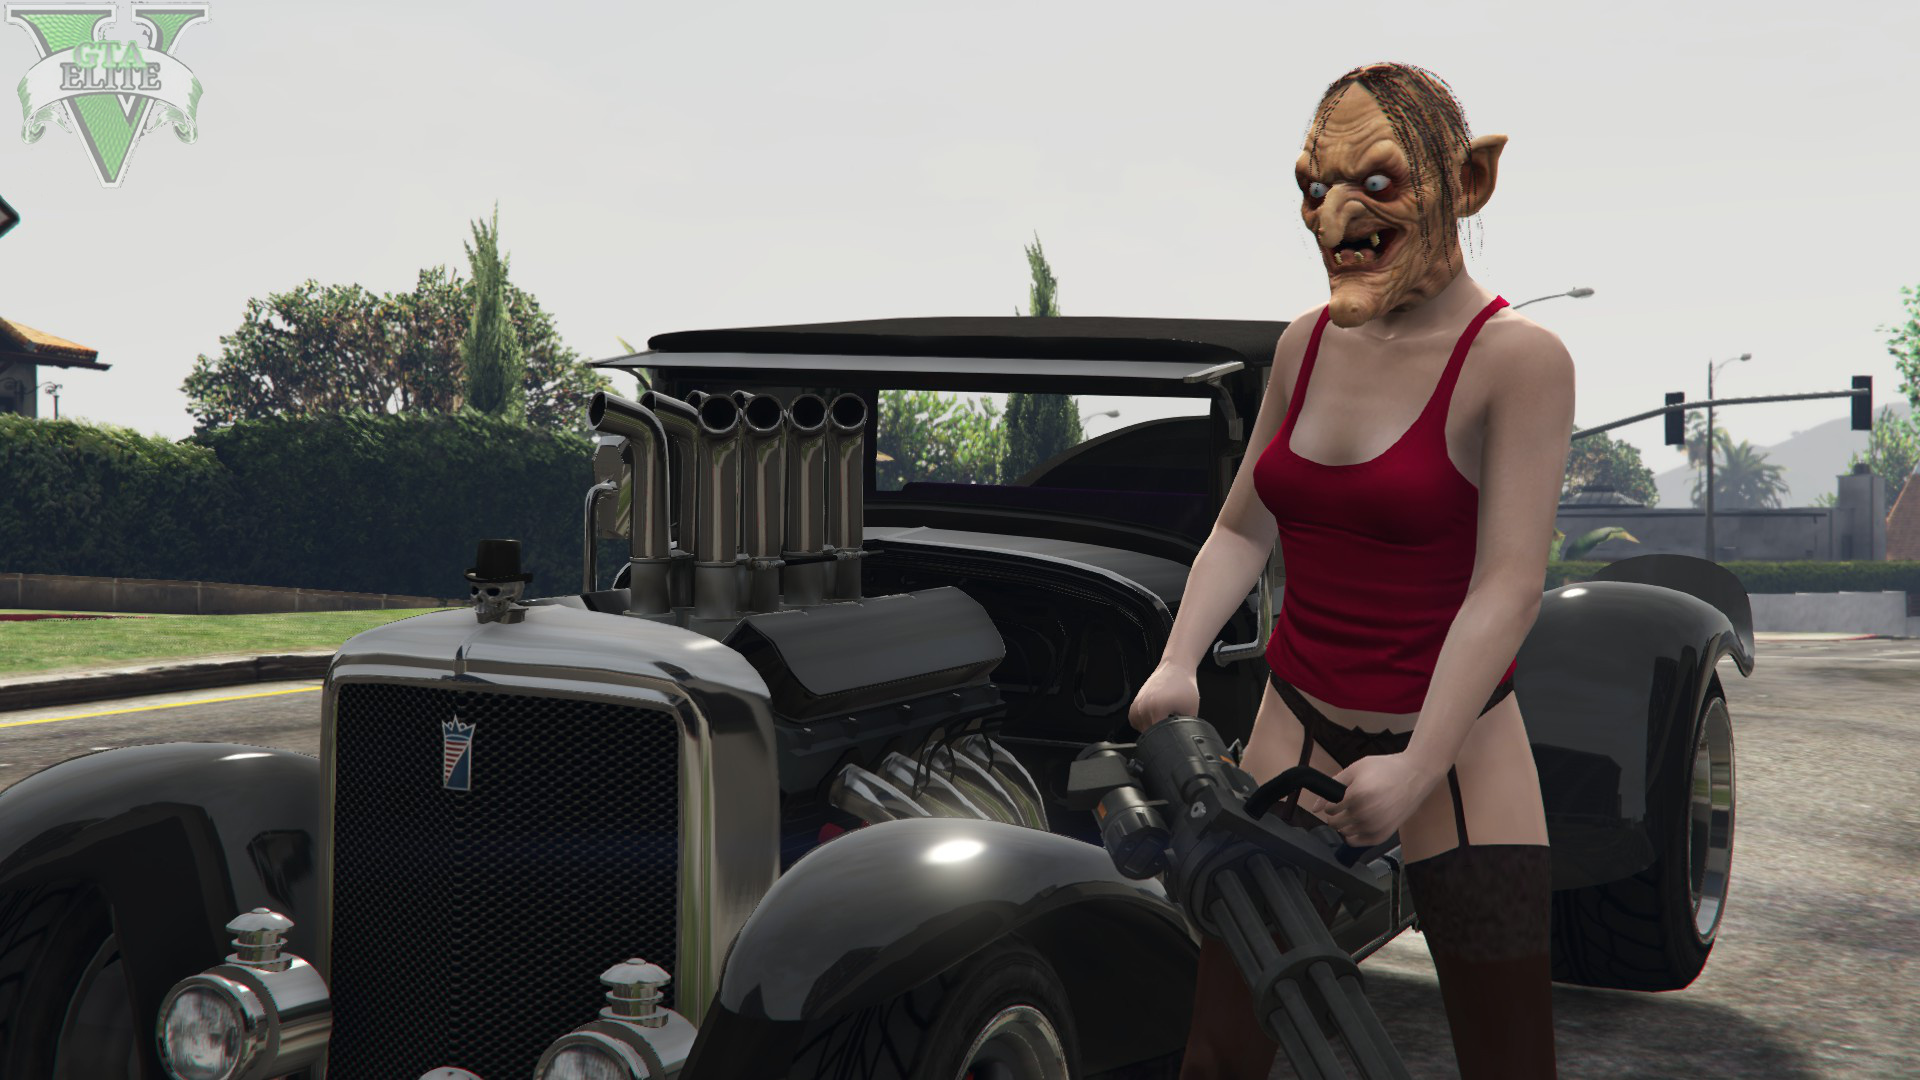 Halloween DLC masks for free mode Male + Female - GTA5-Mods.com